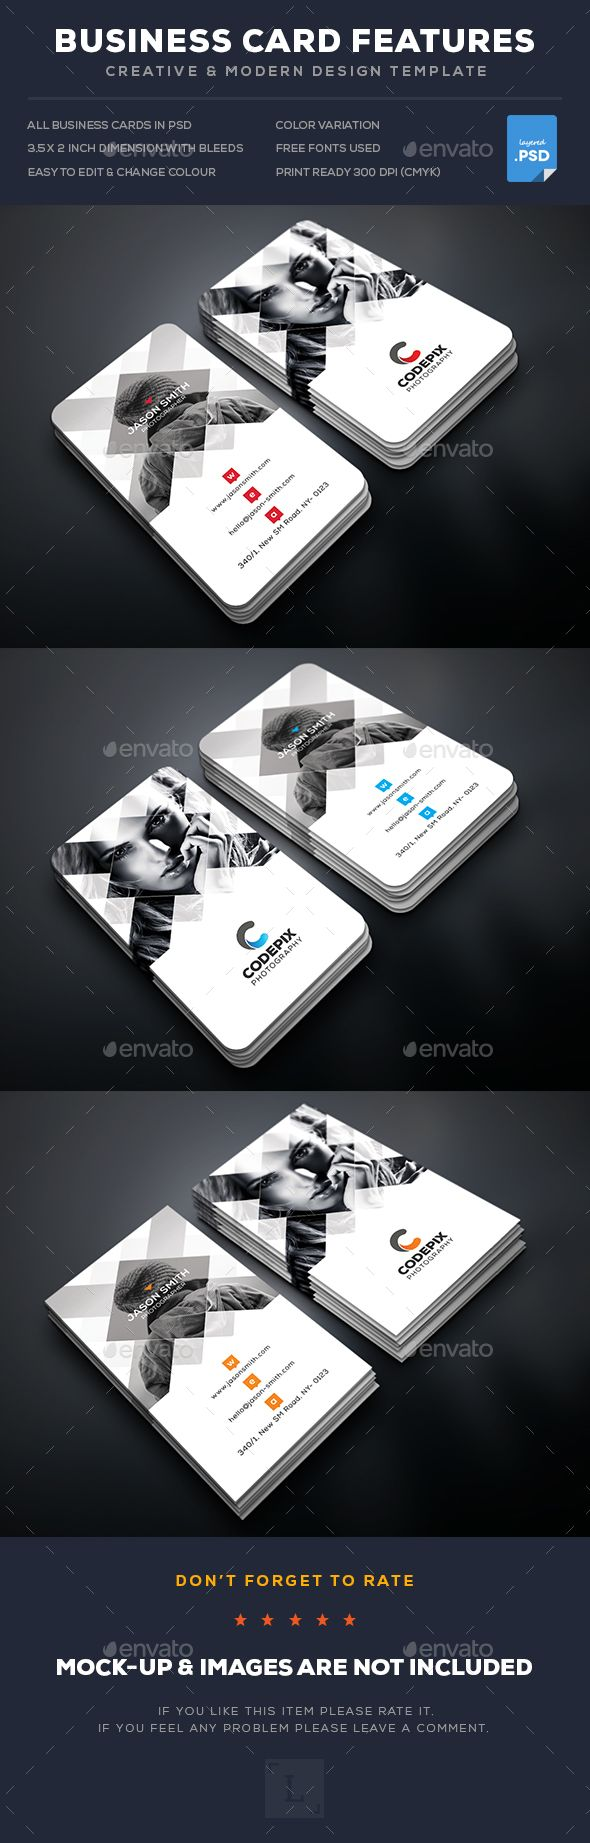 37 best business cards images on pinterest business card design creative photography business card cheaphphosting Images